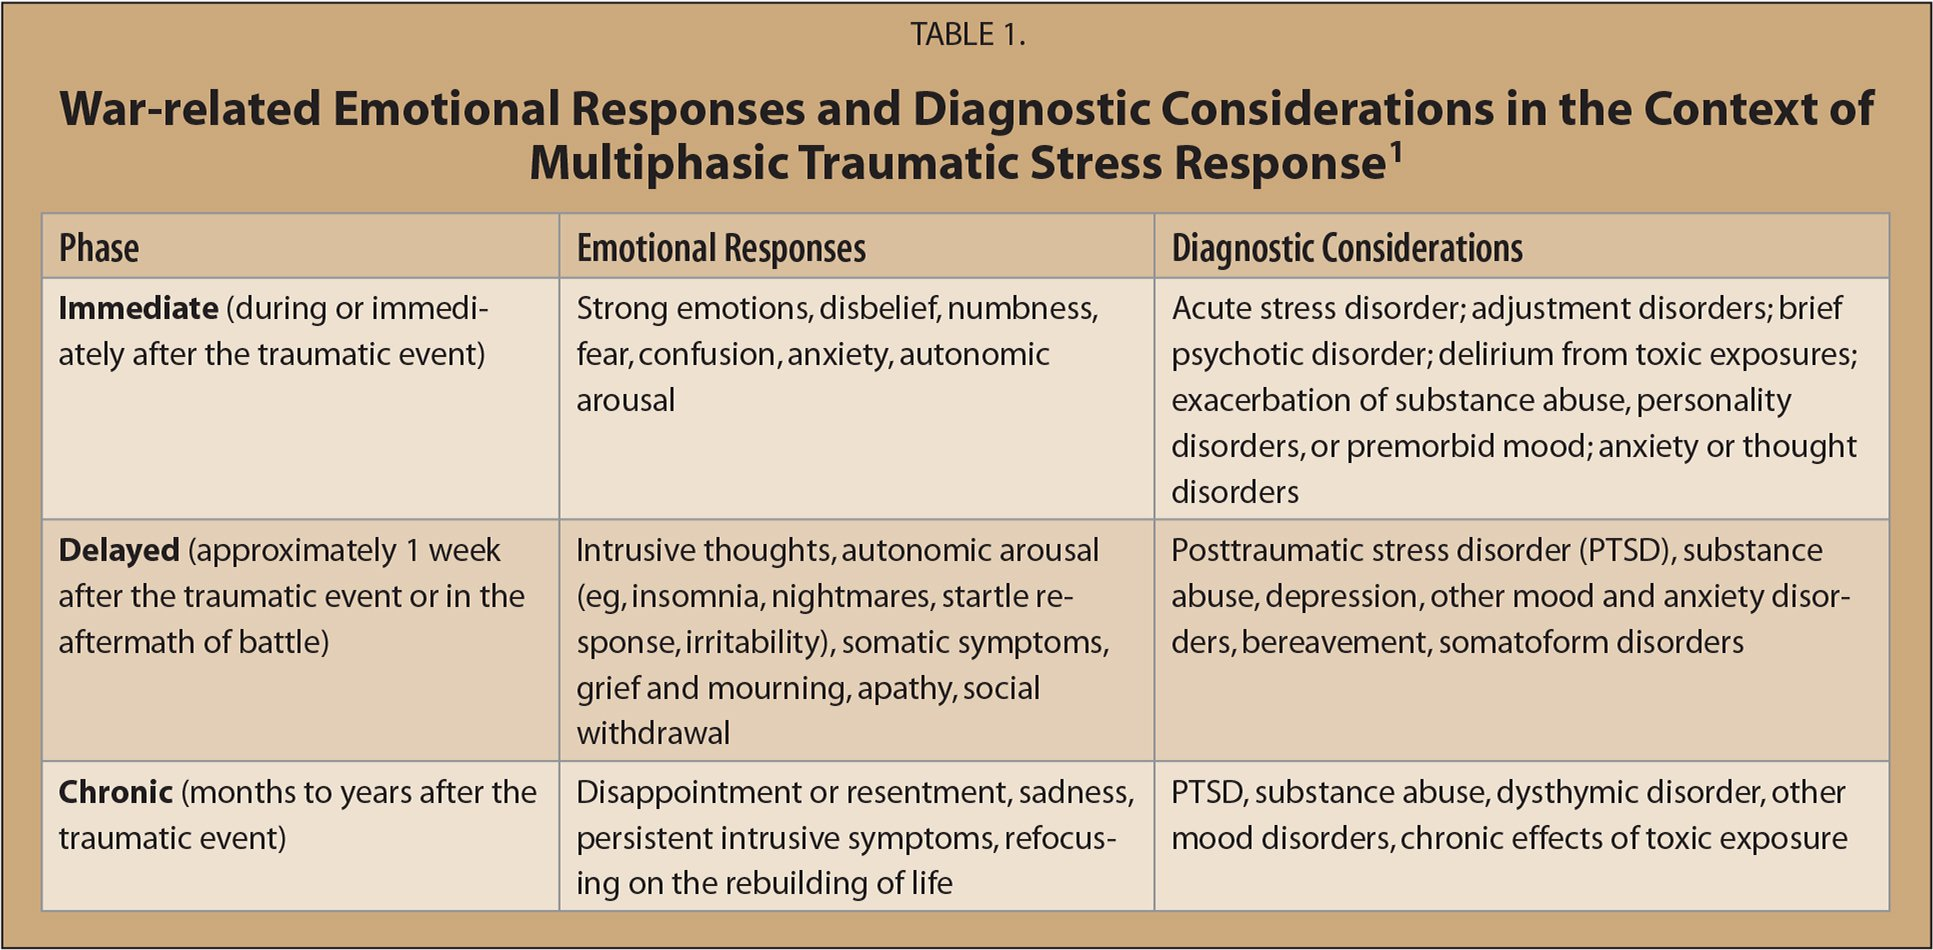 War-related Emotional Responses and Diagnostic Considerations in the Context of Multiphasic Traumatic Stress Response1